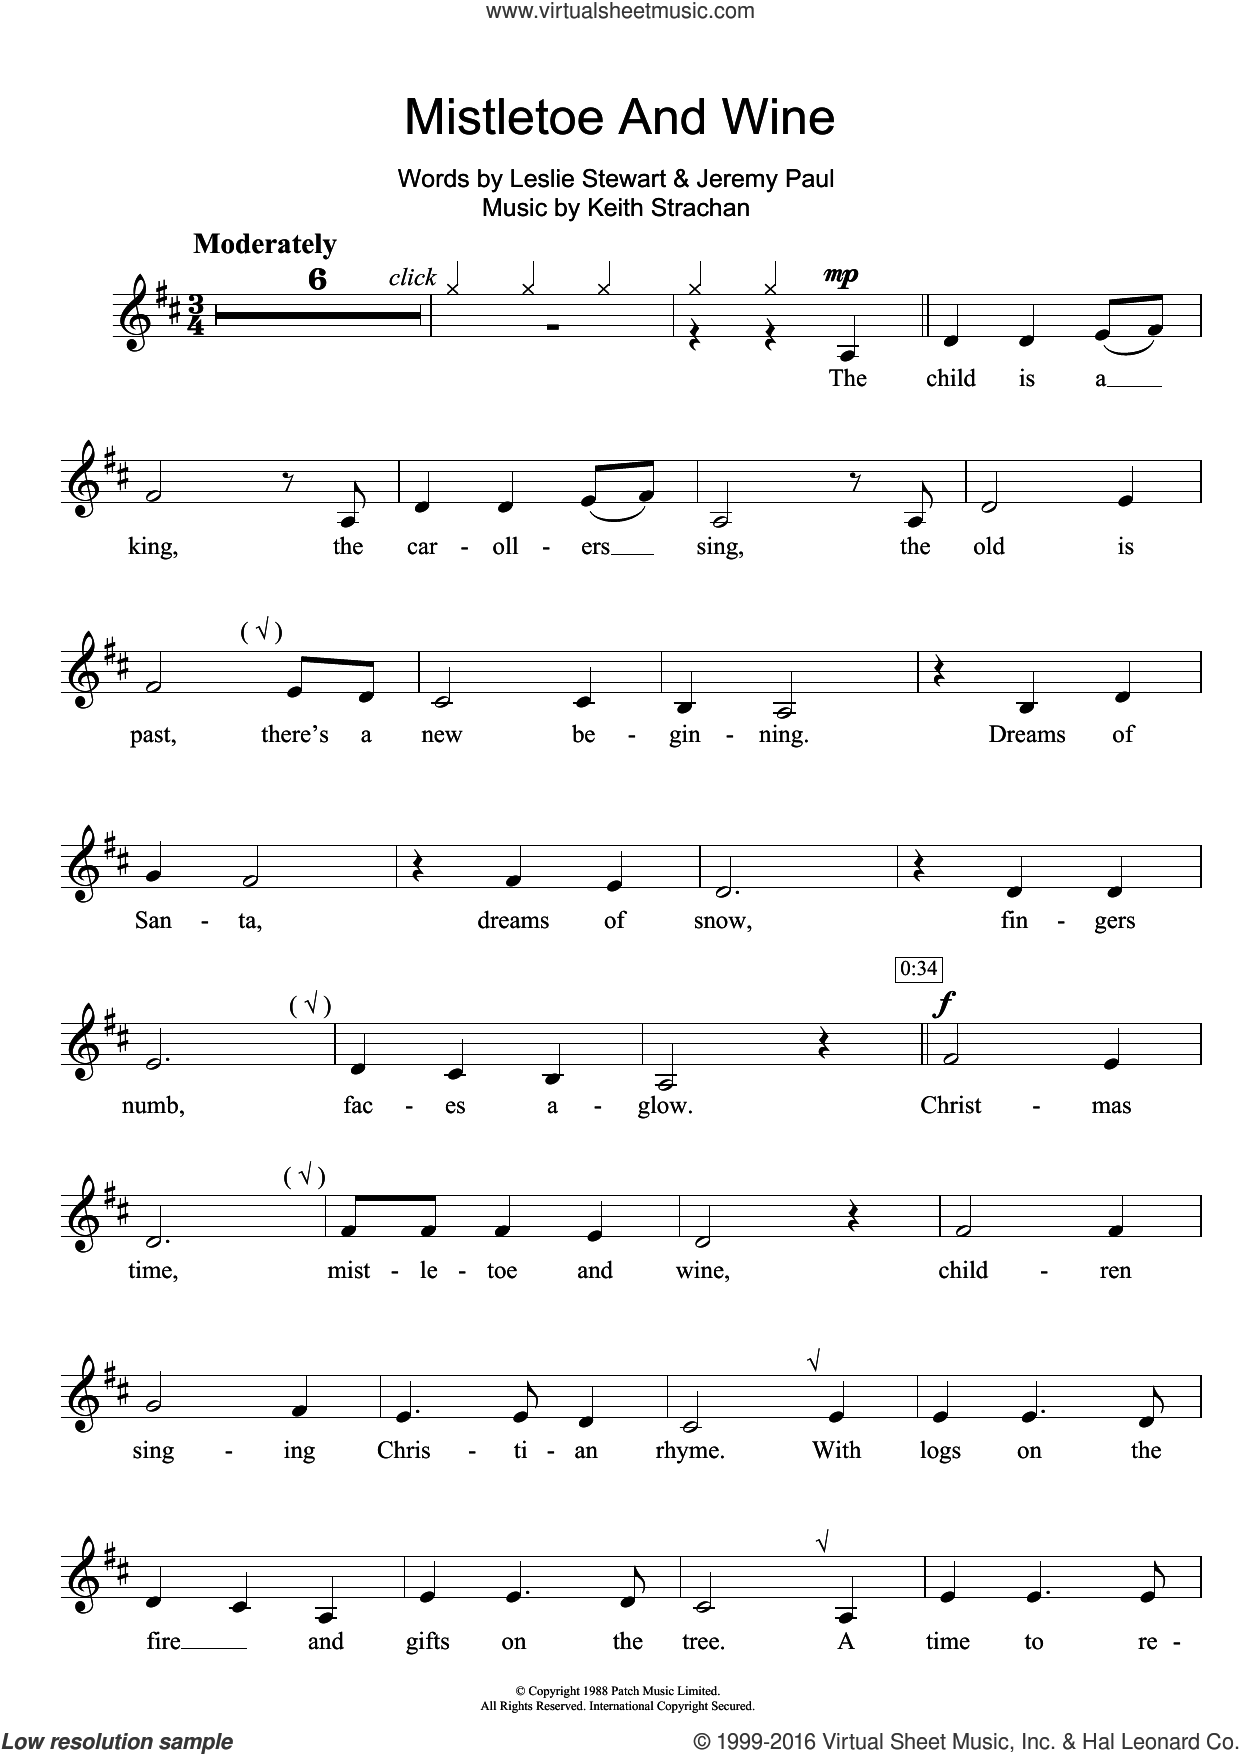 Mistletoe And Wine sheet music for clarinet solo by Cliff Richard, Jeremy Paul, Keith Strachan and Leslie Stewart, intermediate. Score Image Preview.